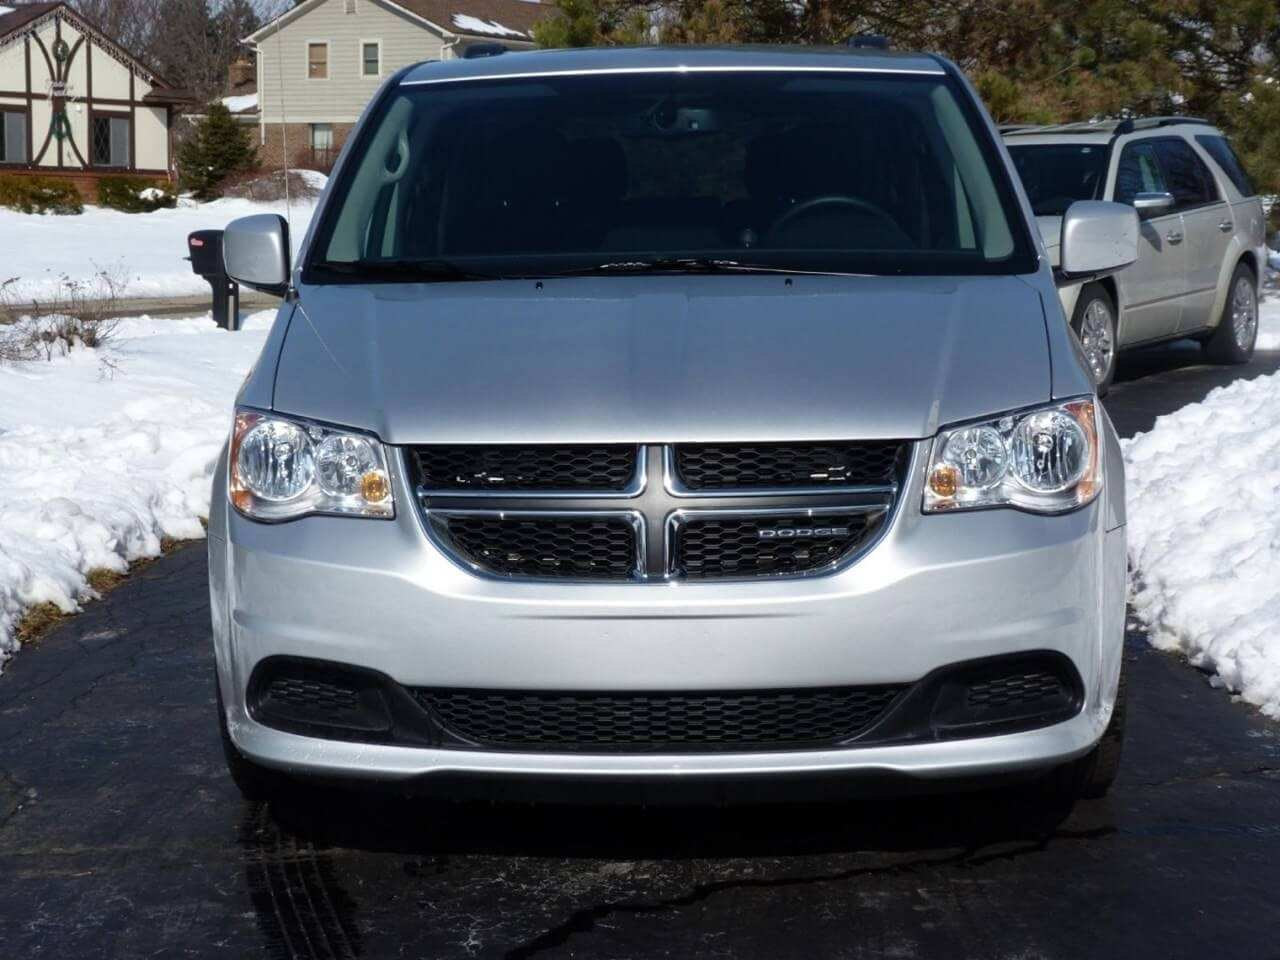 92 Best Review 2020 Dodge Grand Caravan Gt Exterior for 2020 Dodge Grand Caravan Gt